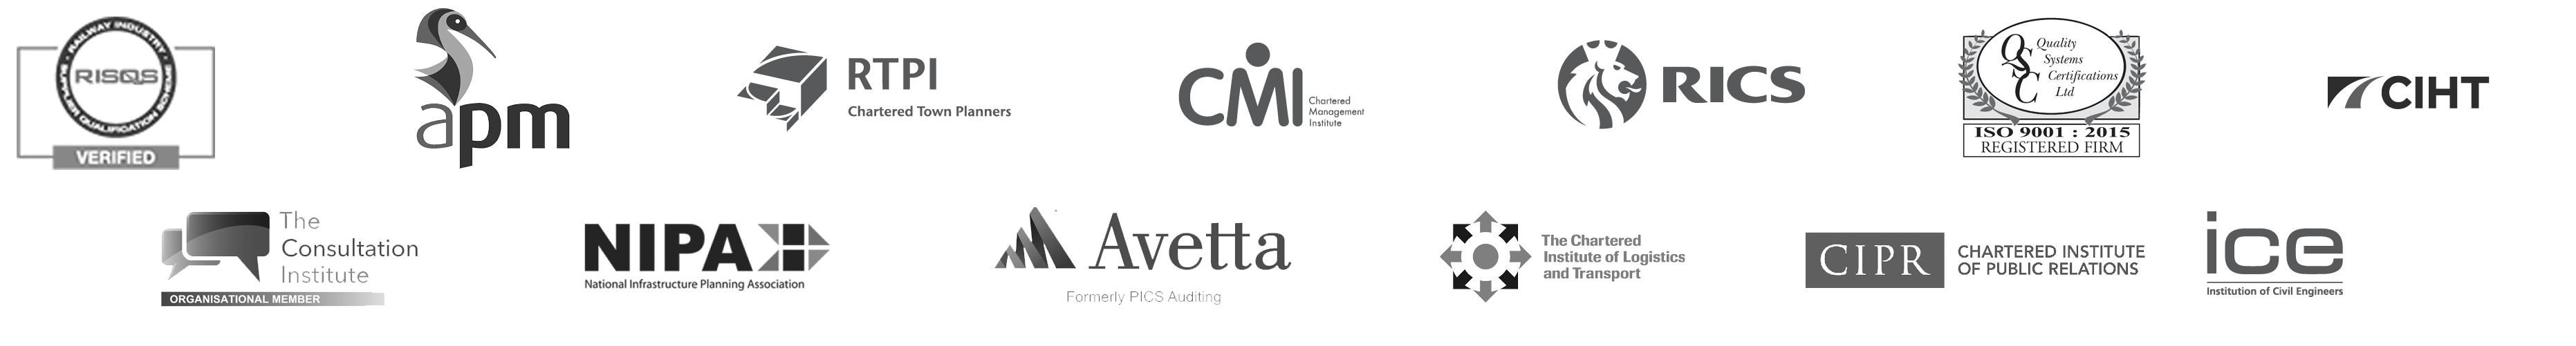 CJ Associates Trade Association Logos Footer Image